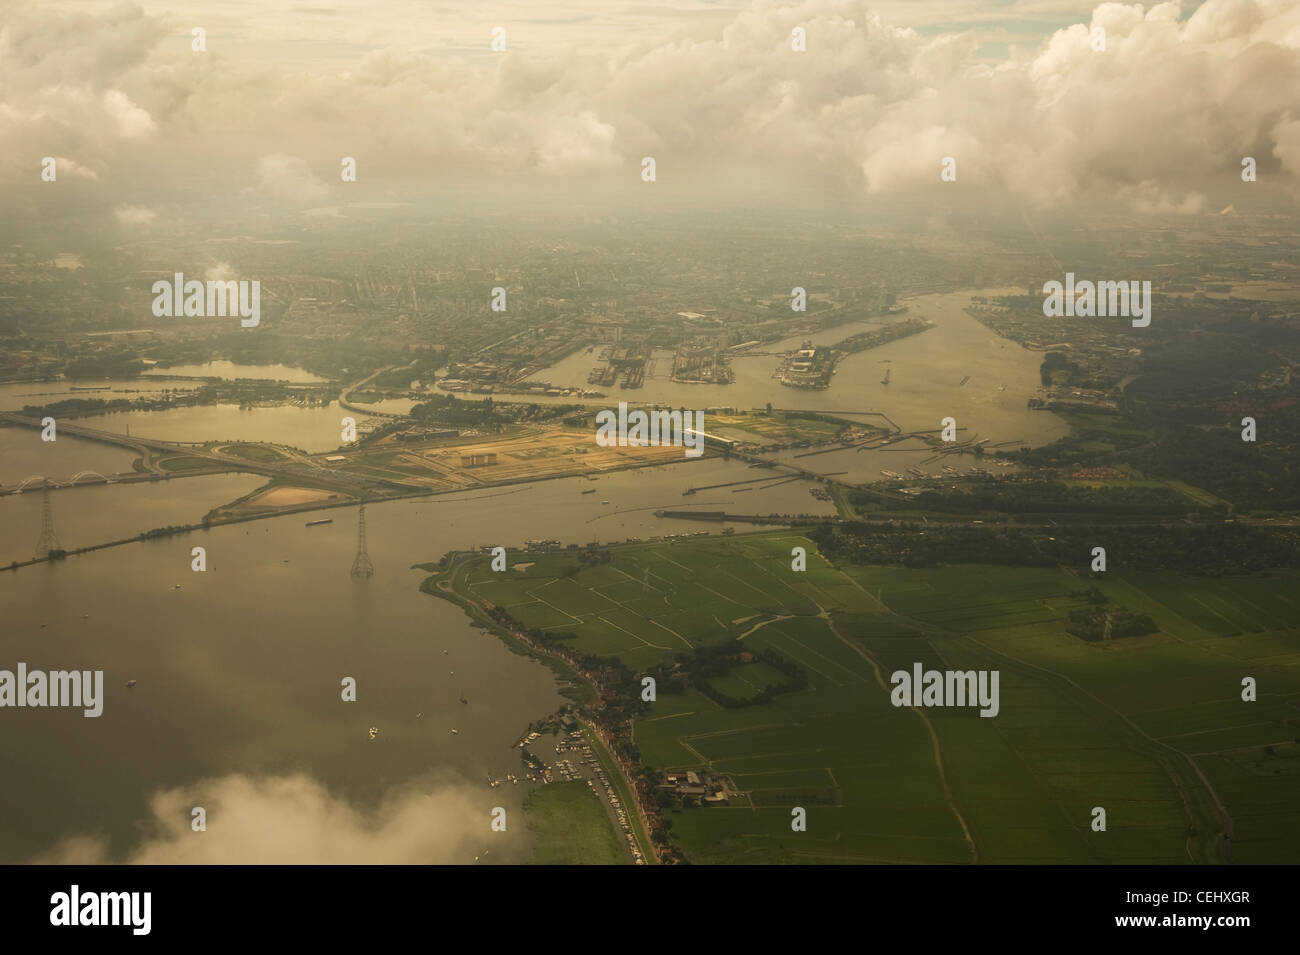 Aerial view of the eastern old harbour area of Amsterdam, Netherlands - Stock Image